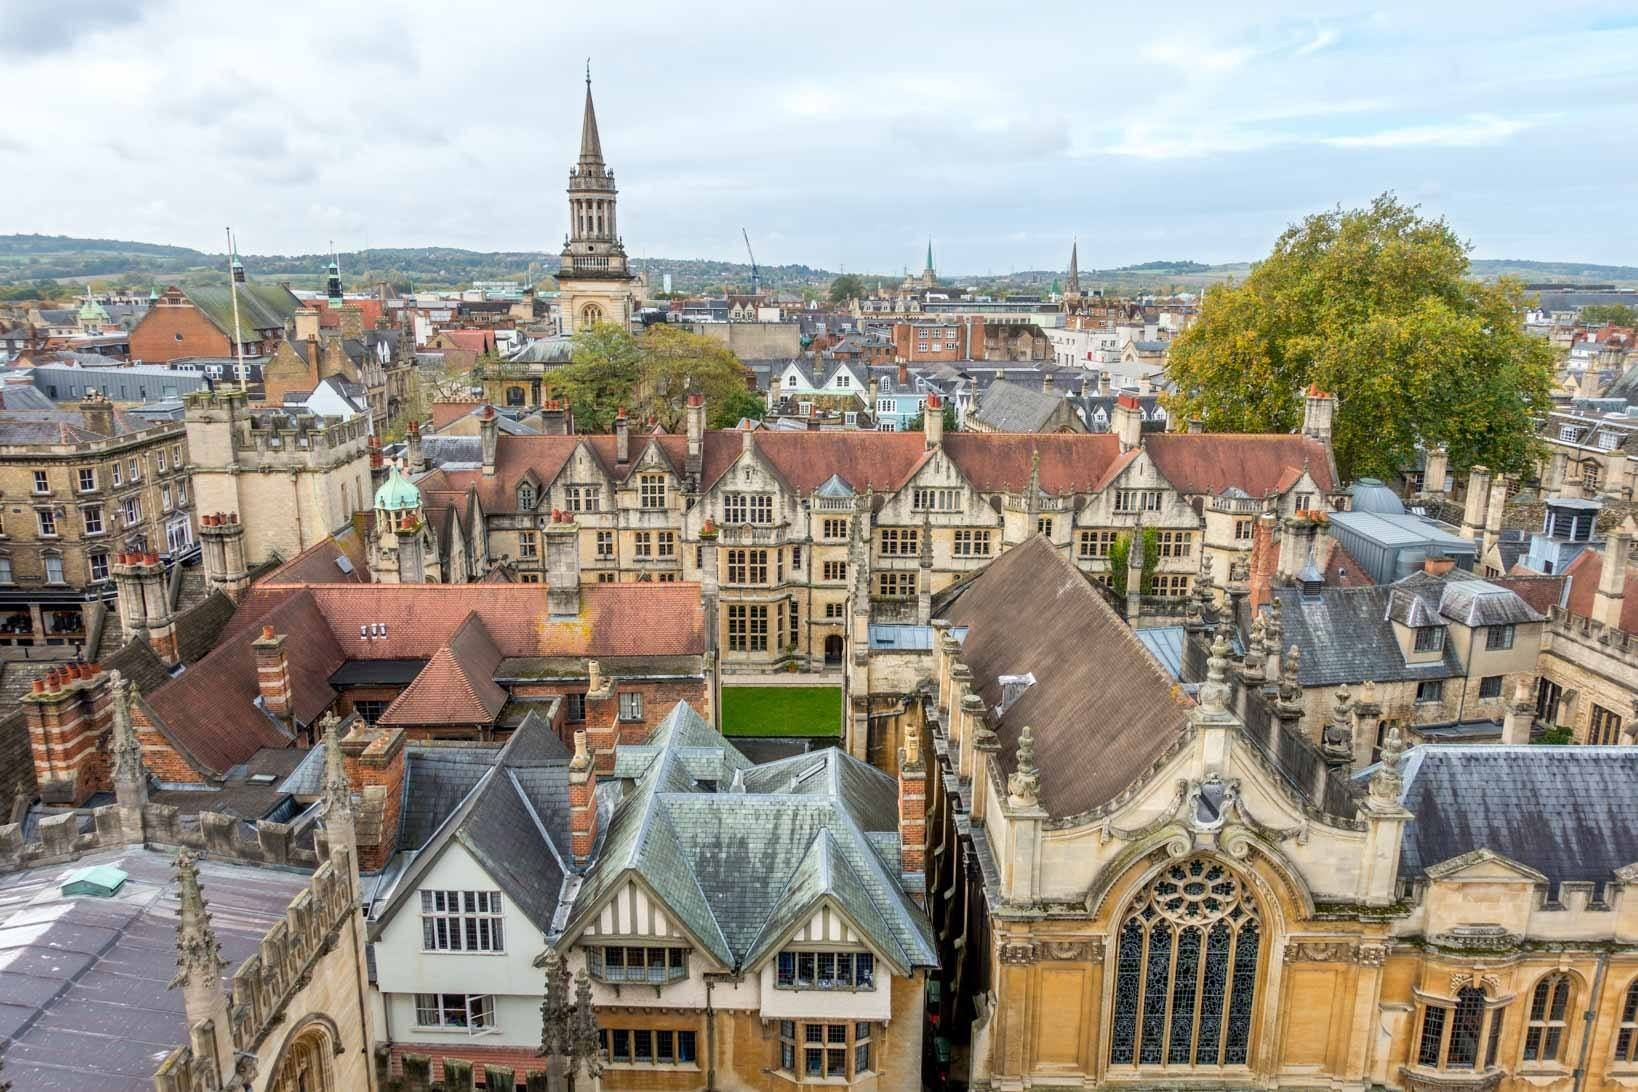 Rooftops and spires of Oxford England